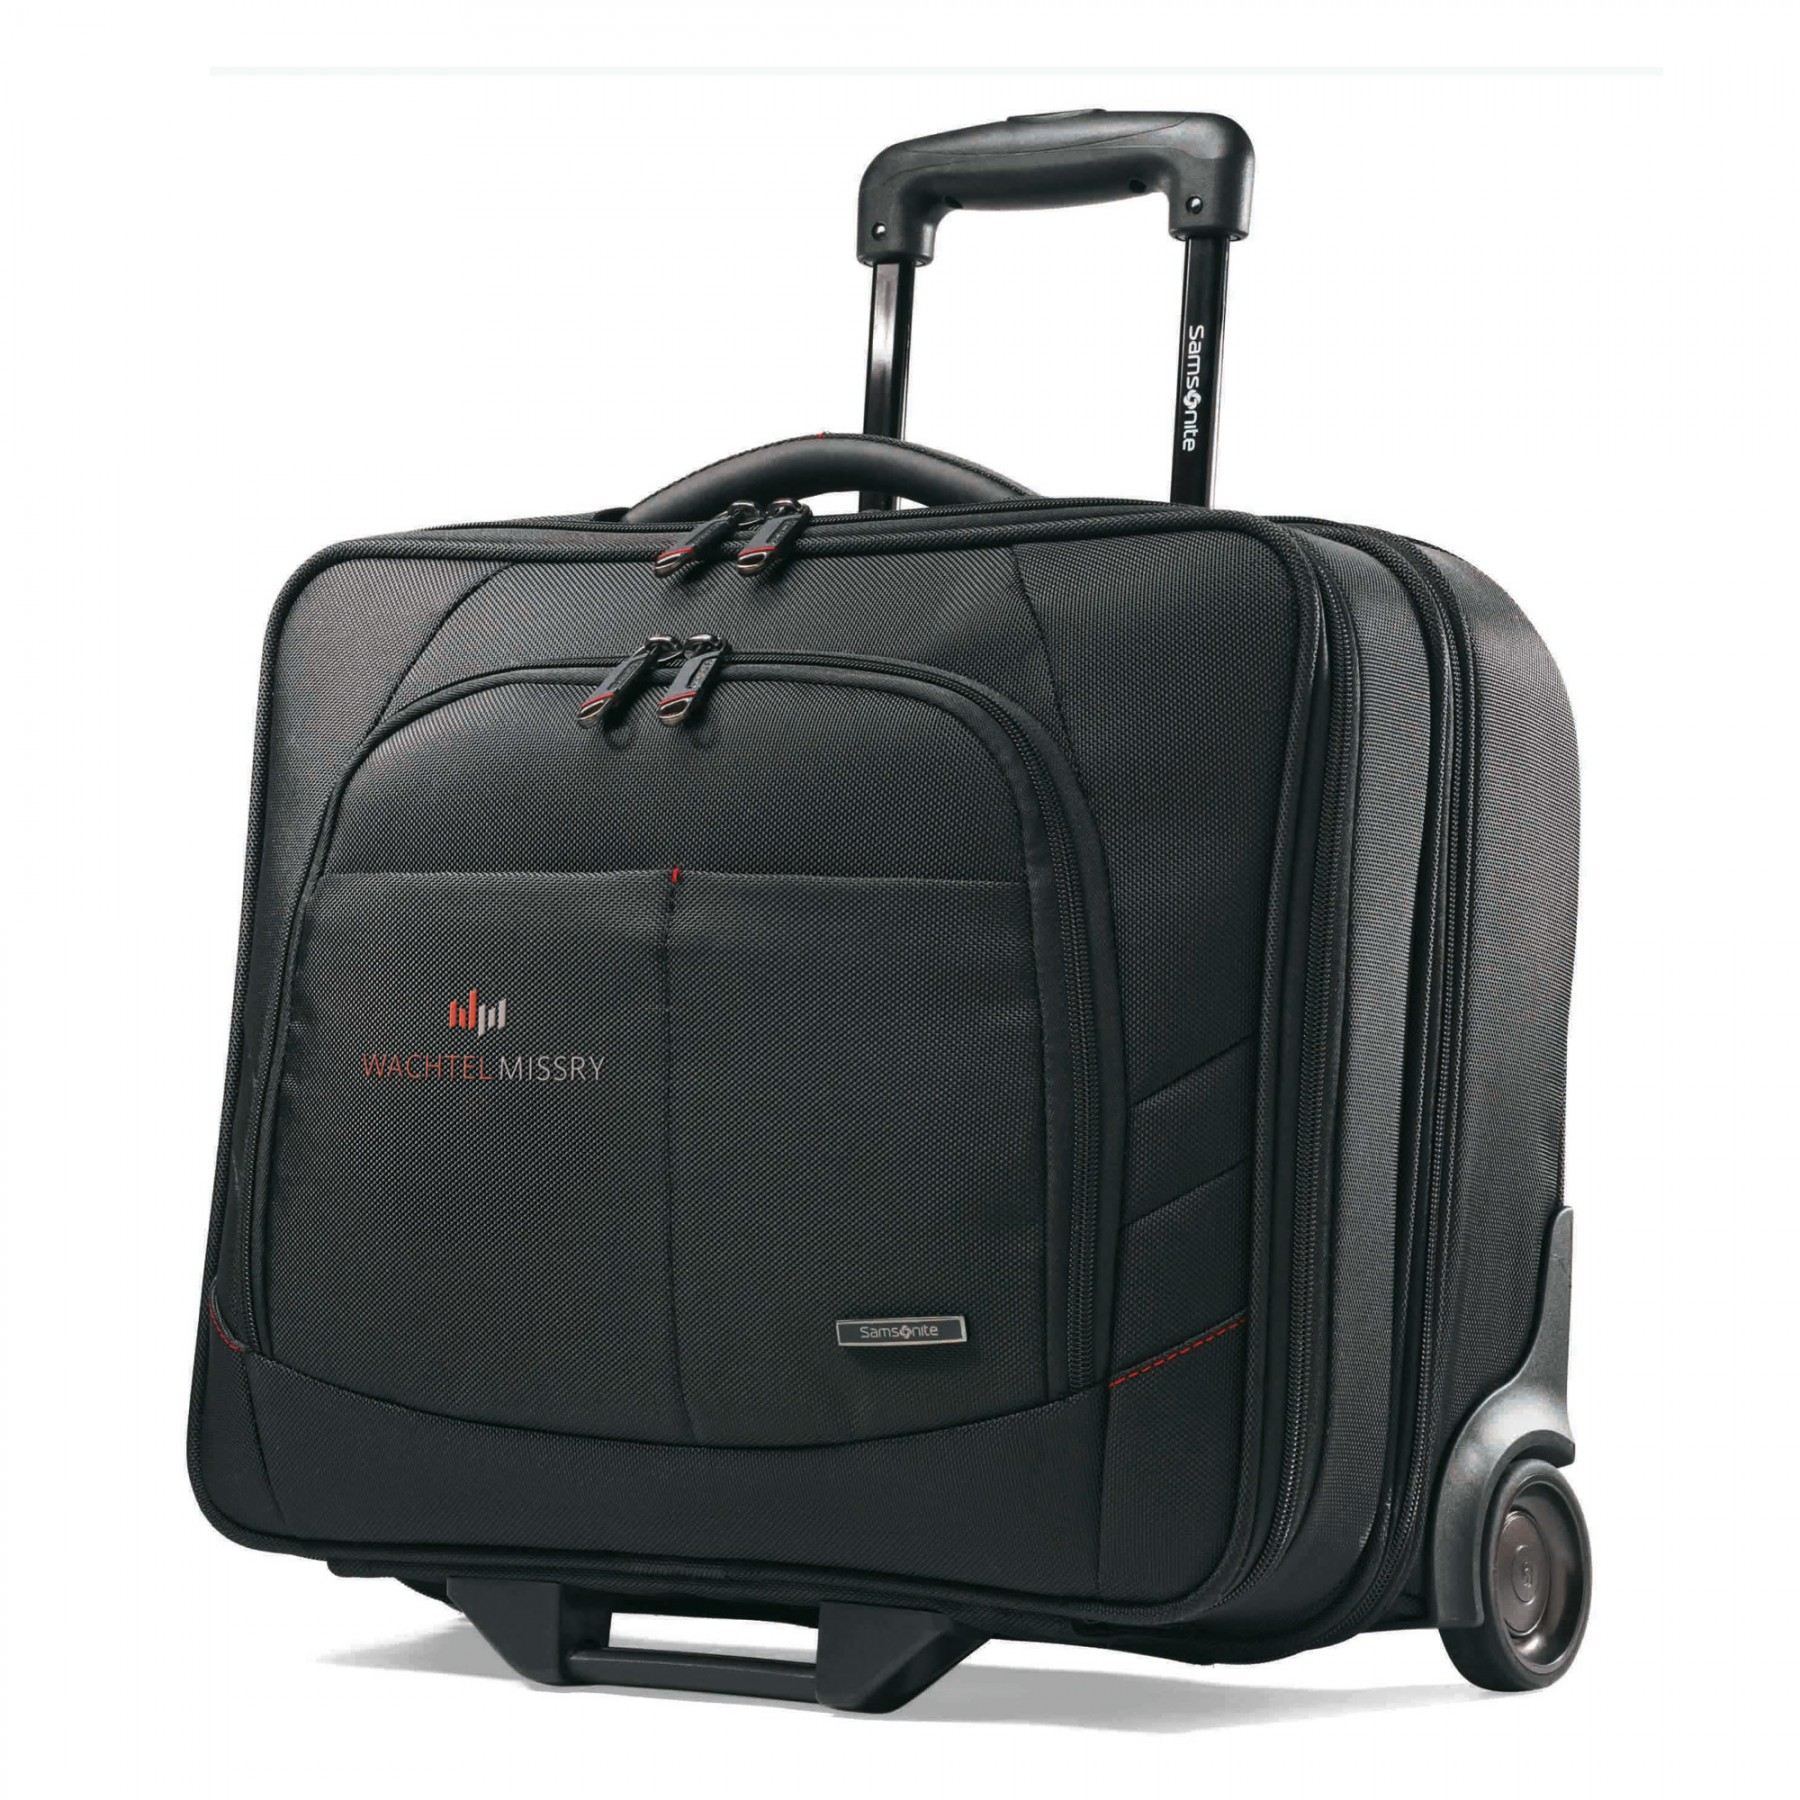 Samsonite Xenon2 Mobile Office